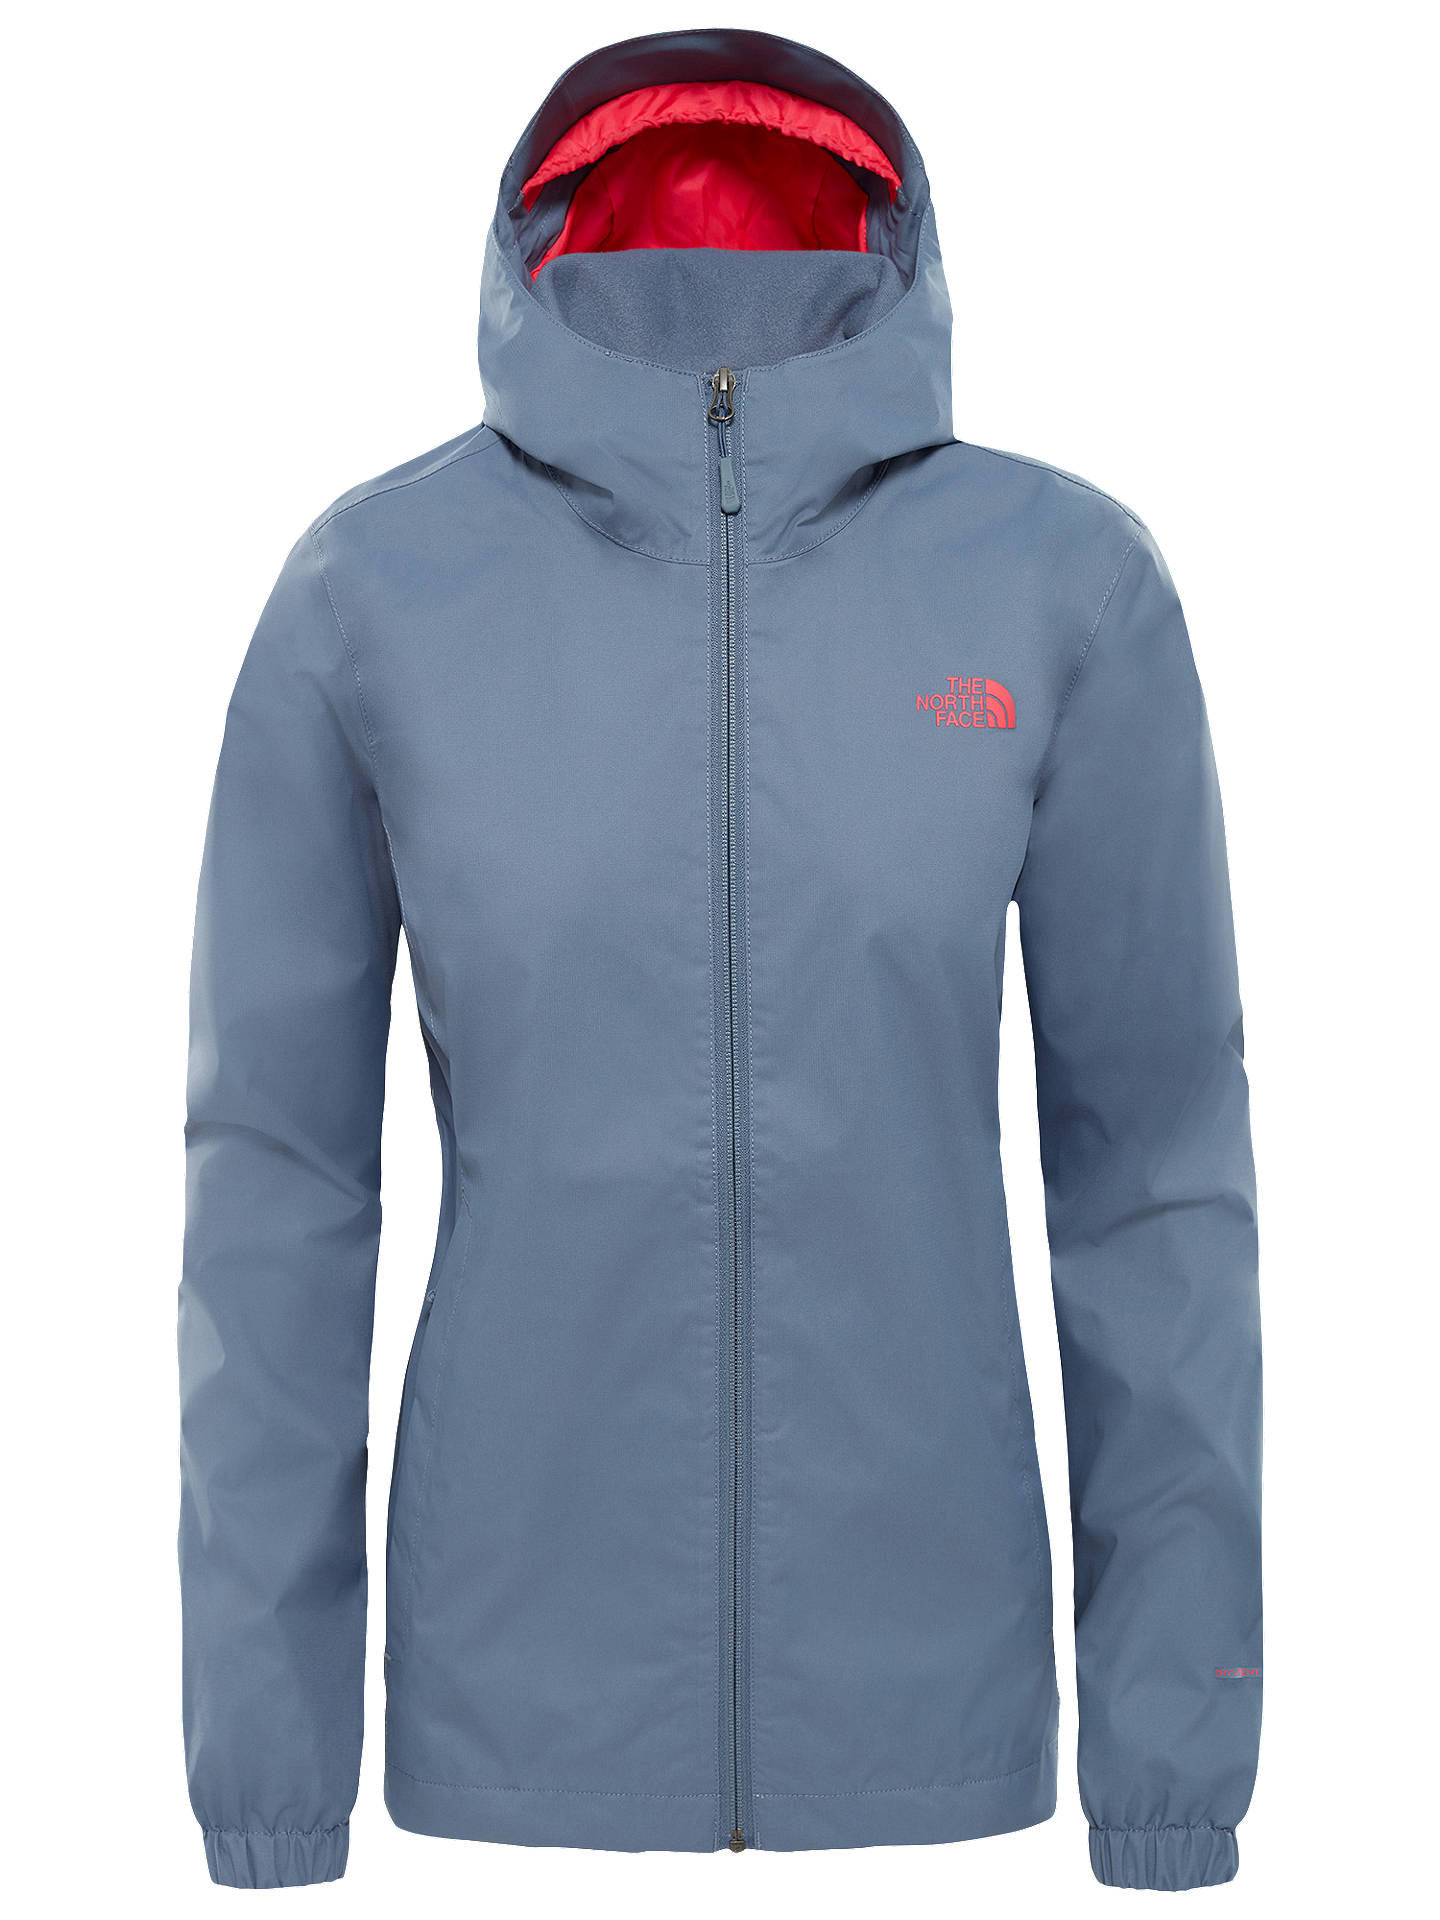 bd5863c5d The North Face Quest Waterproof Women's Jacket, Grisaille Grey at ...